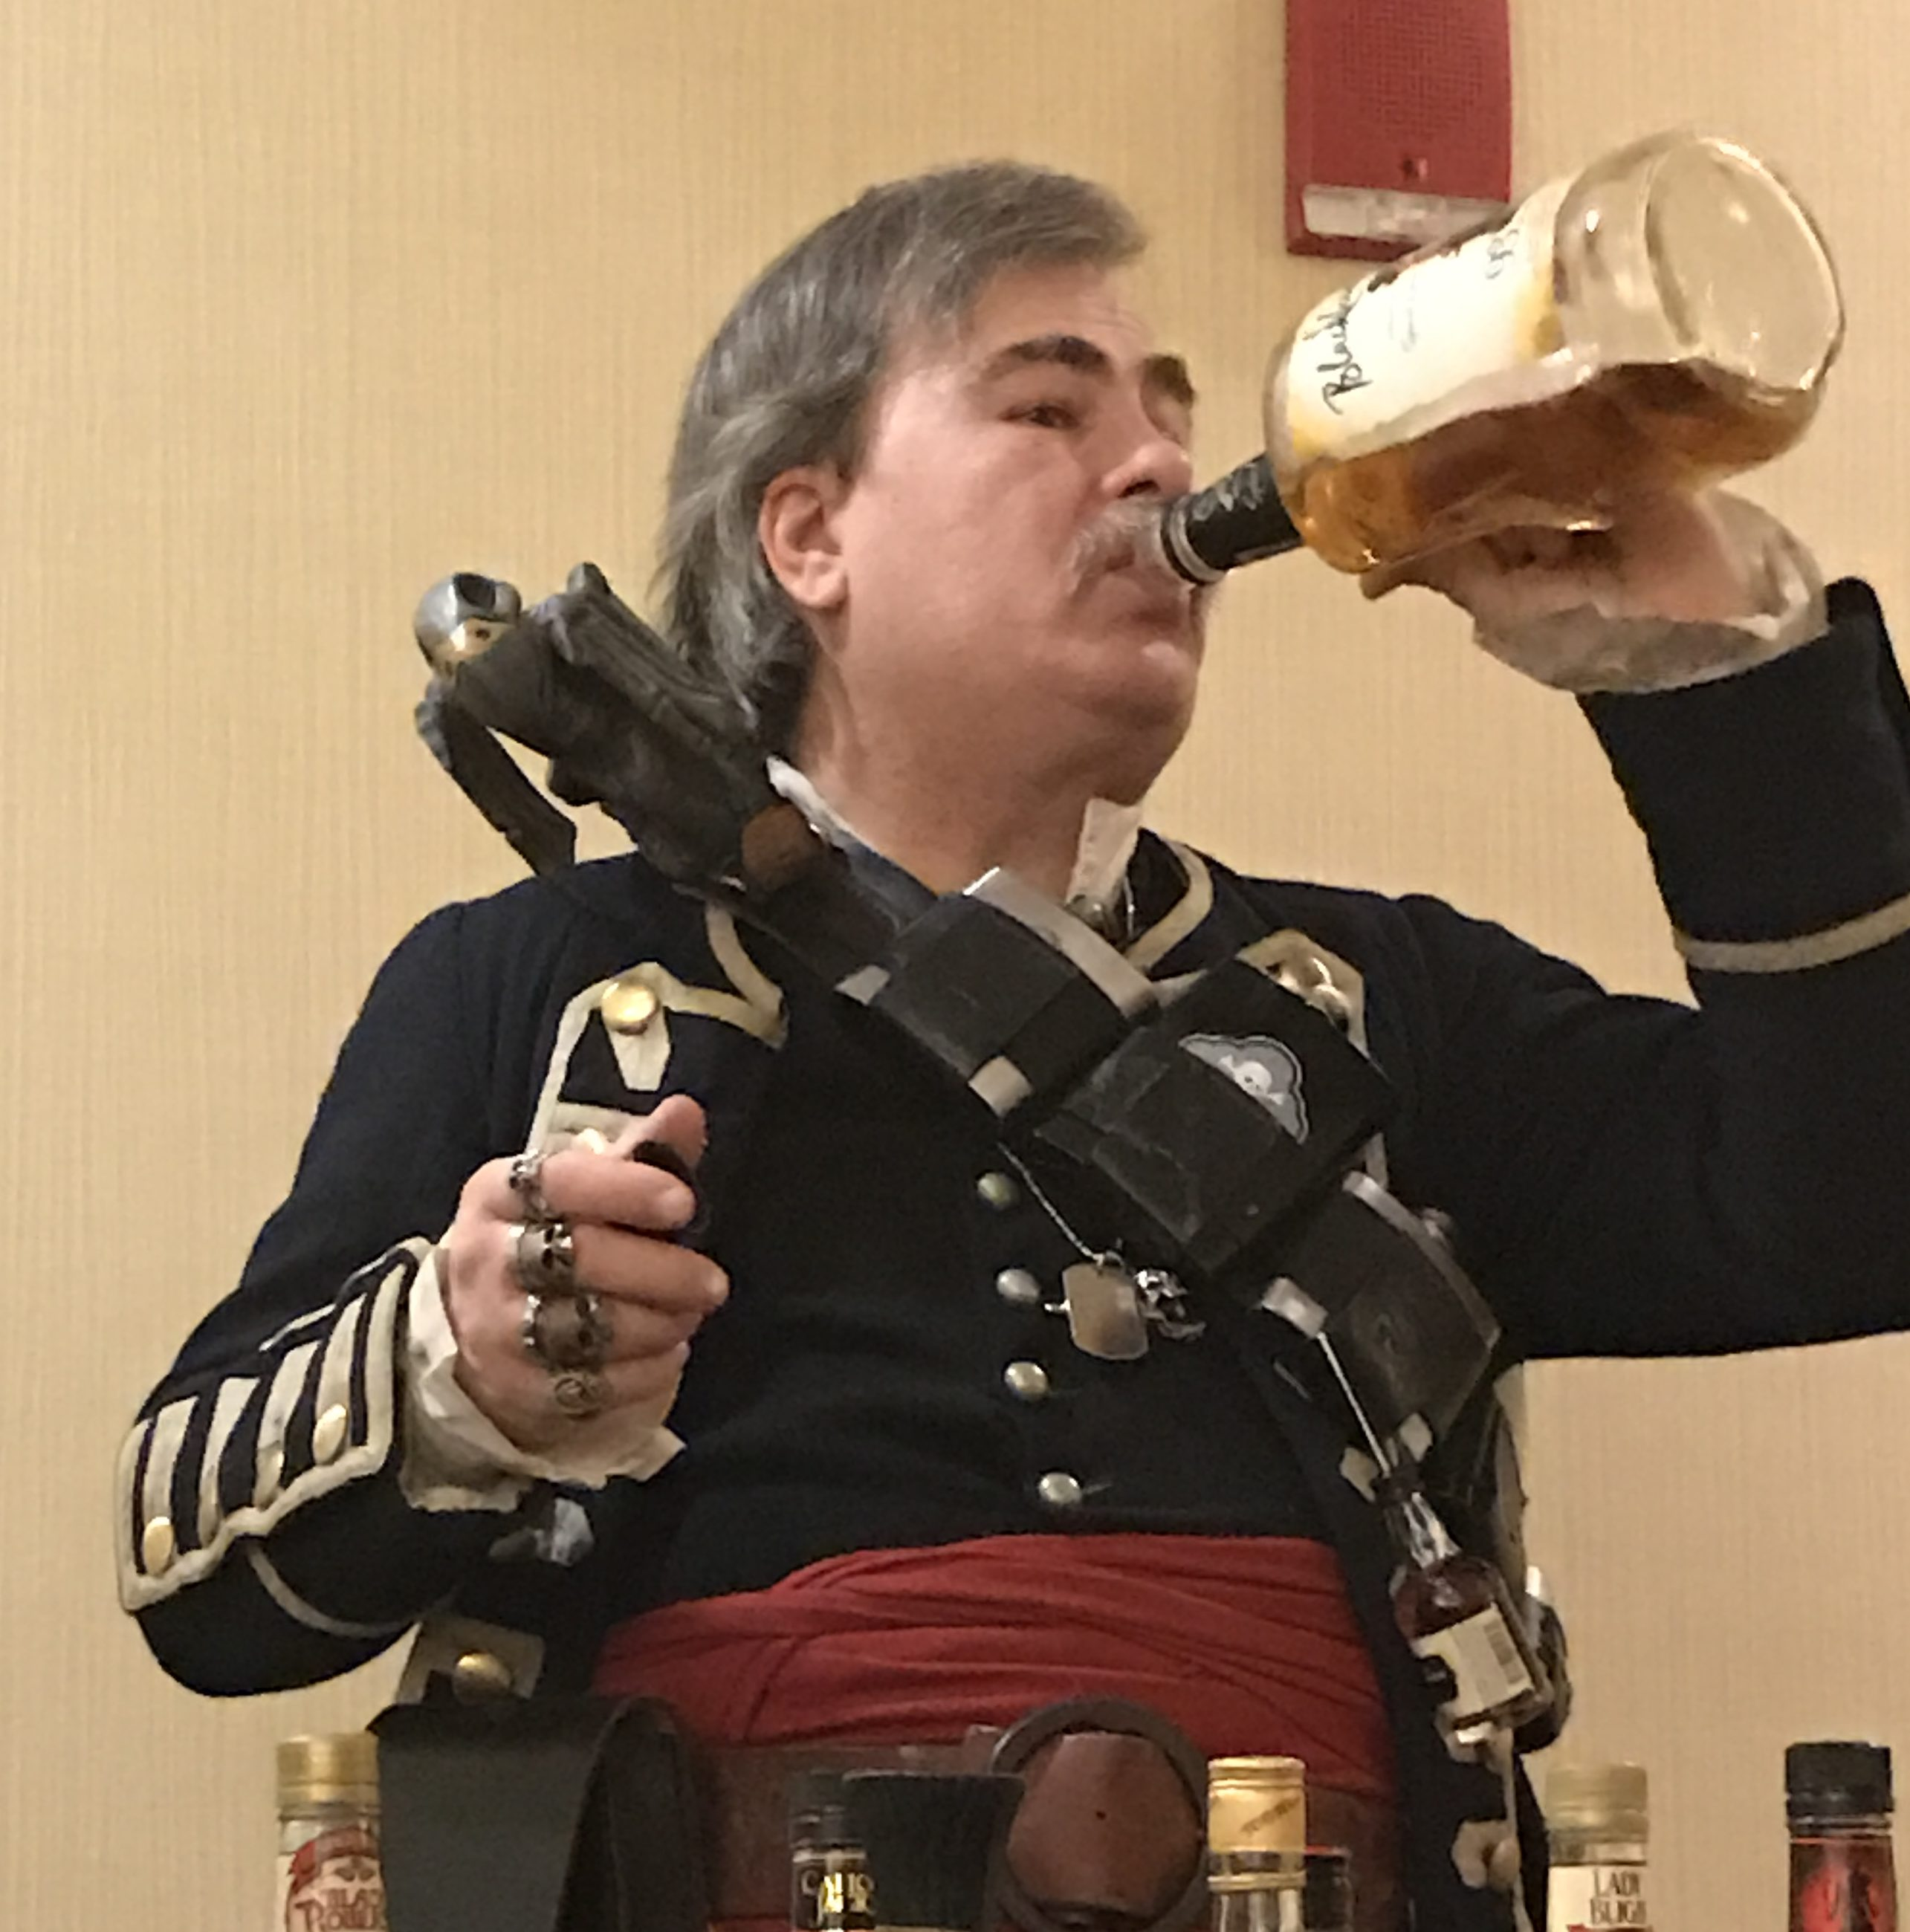 Captain Rumpot drinks Blackheart Rum